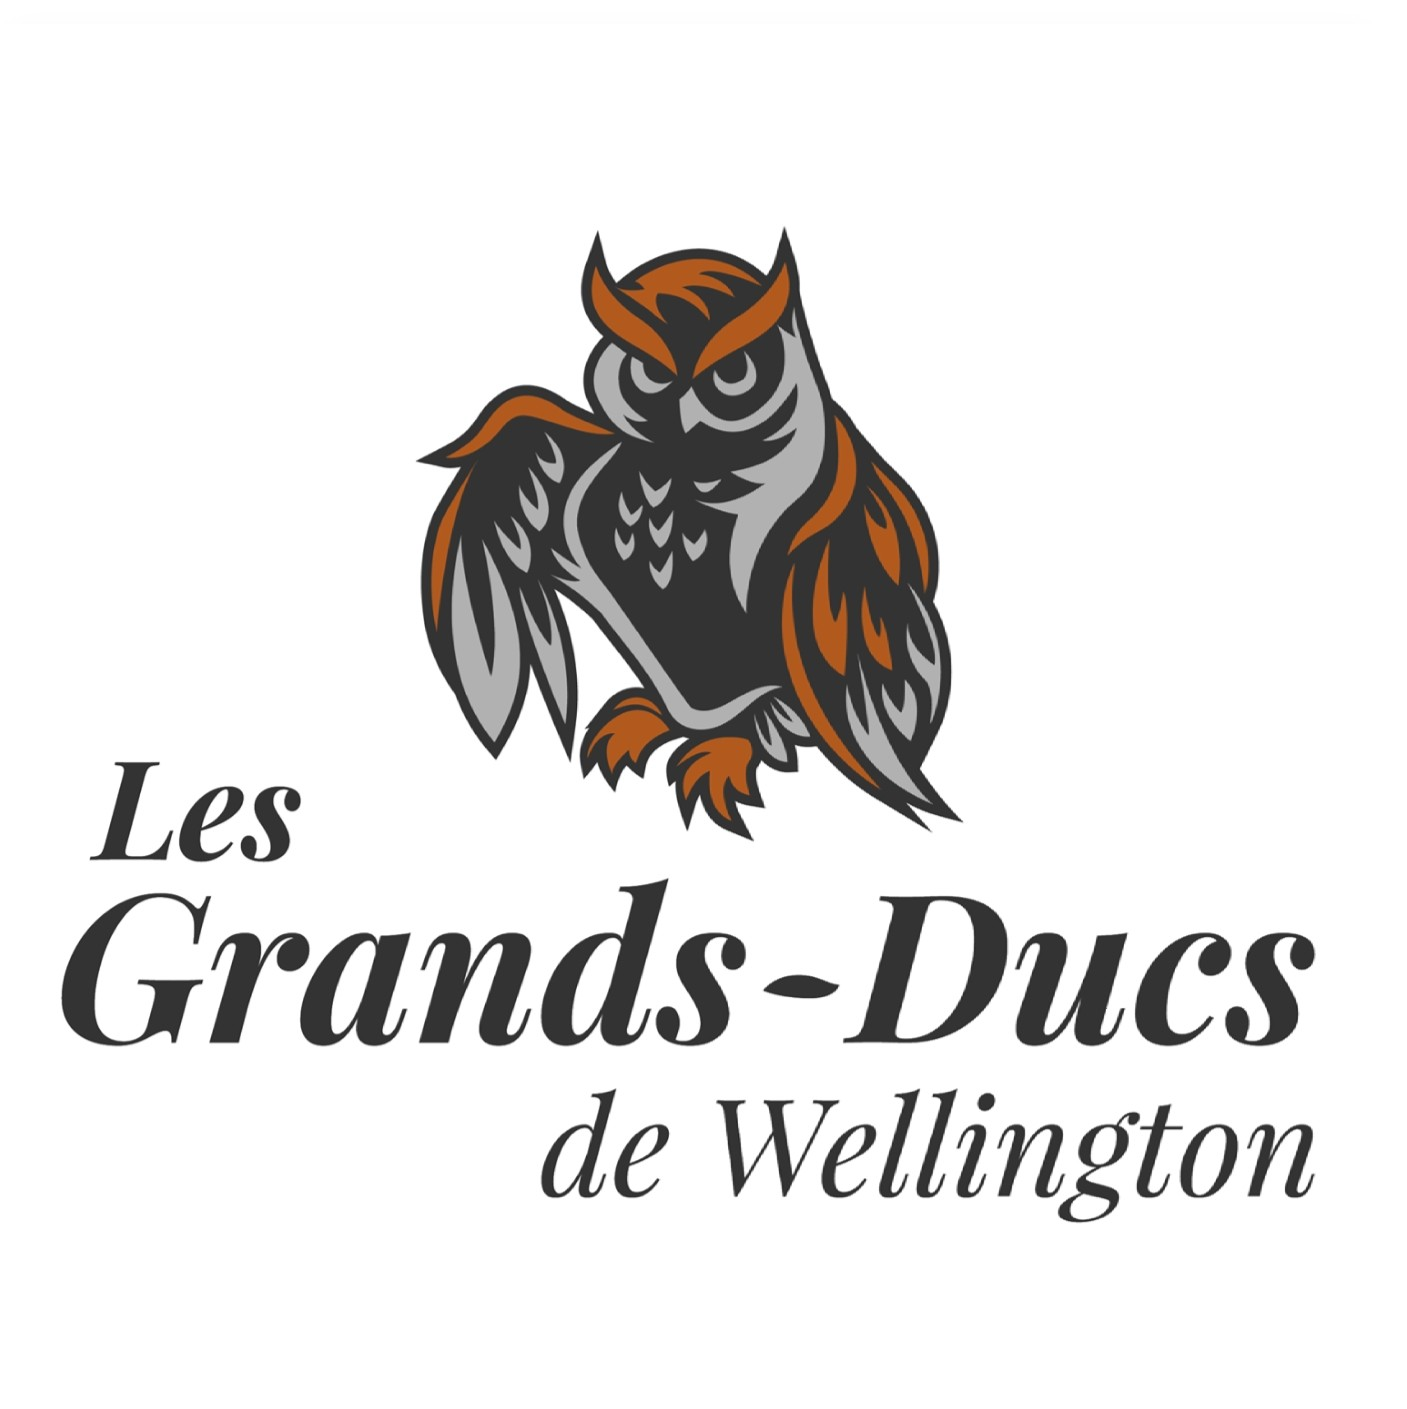 Grands ducs de Wellington